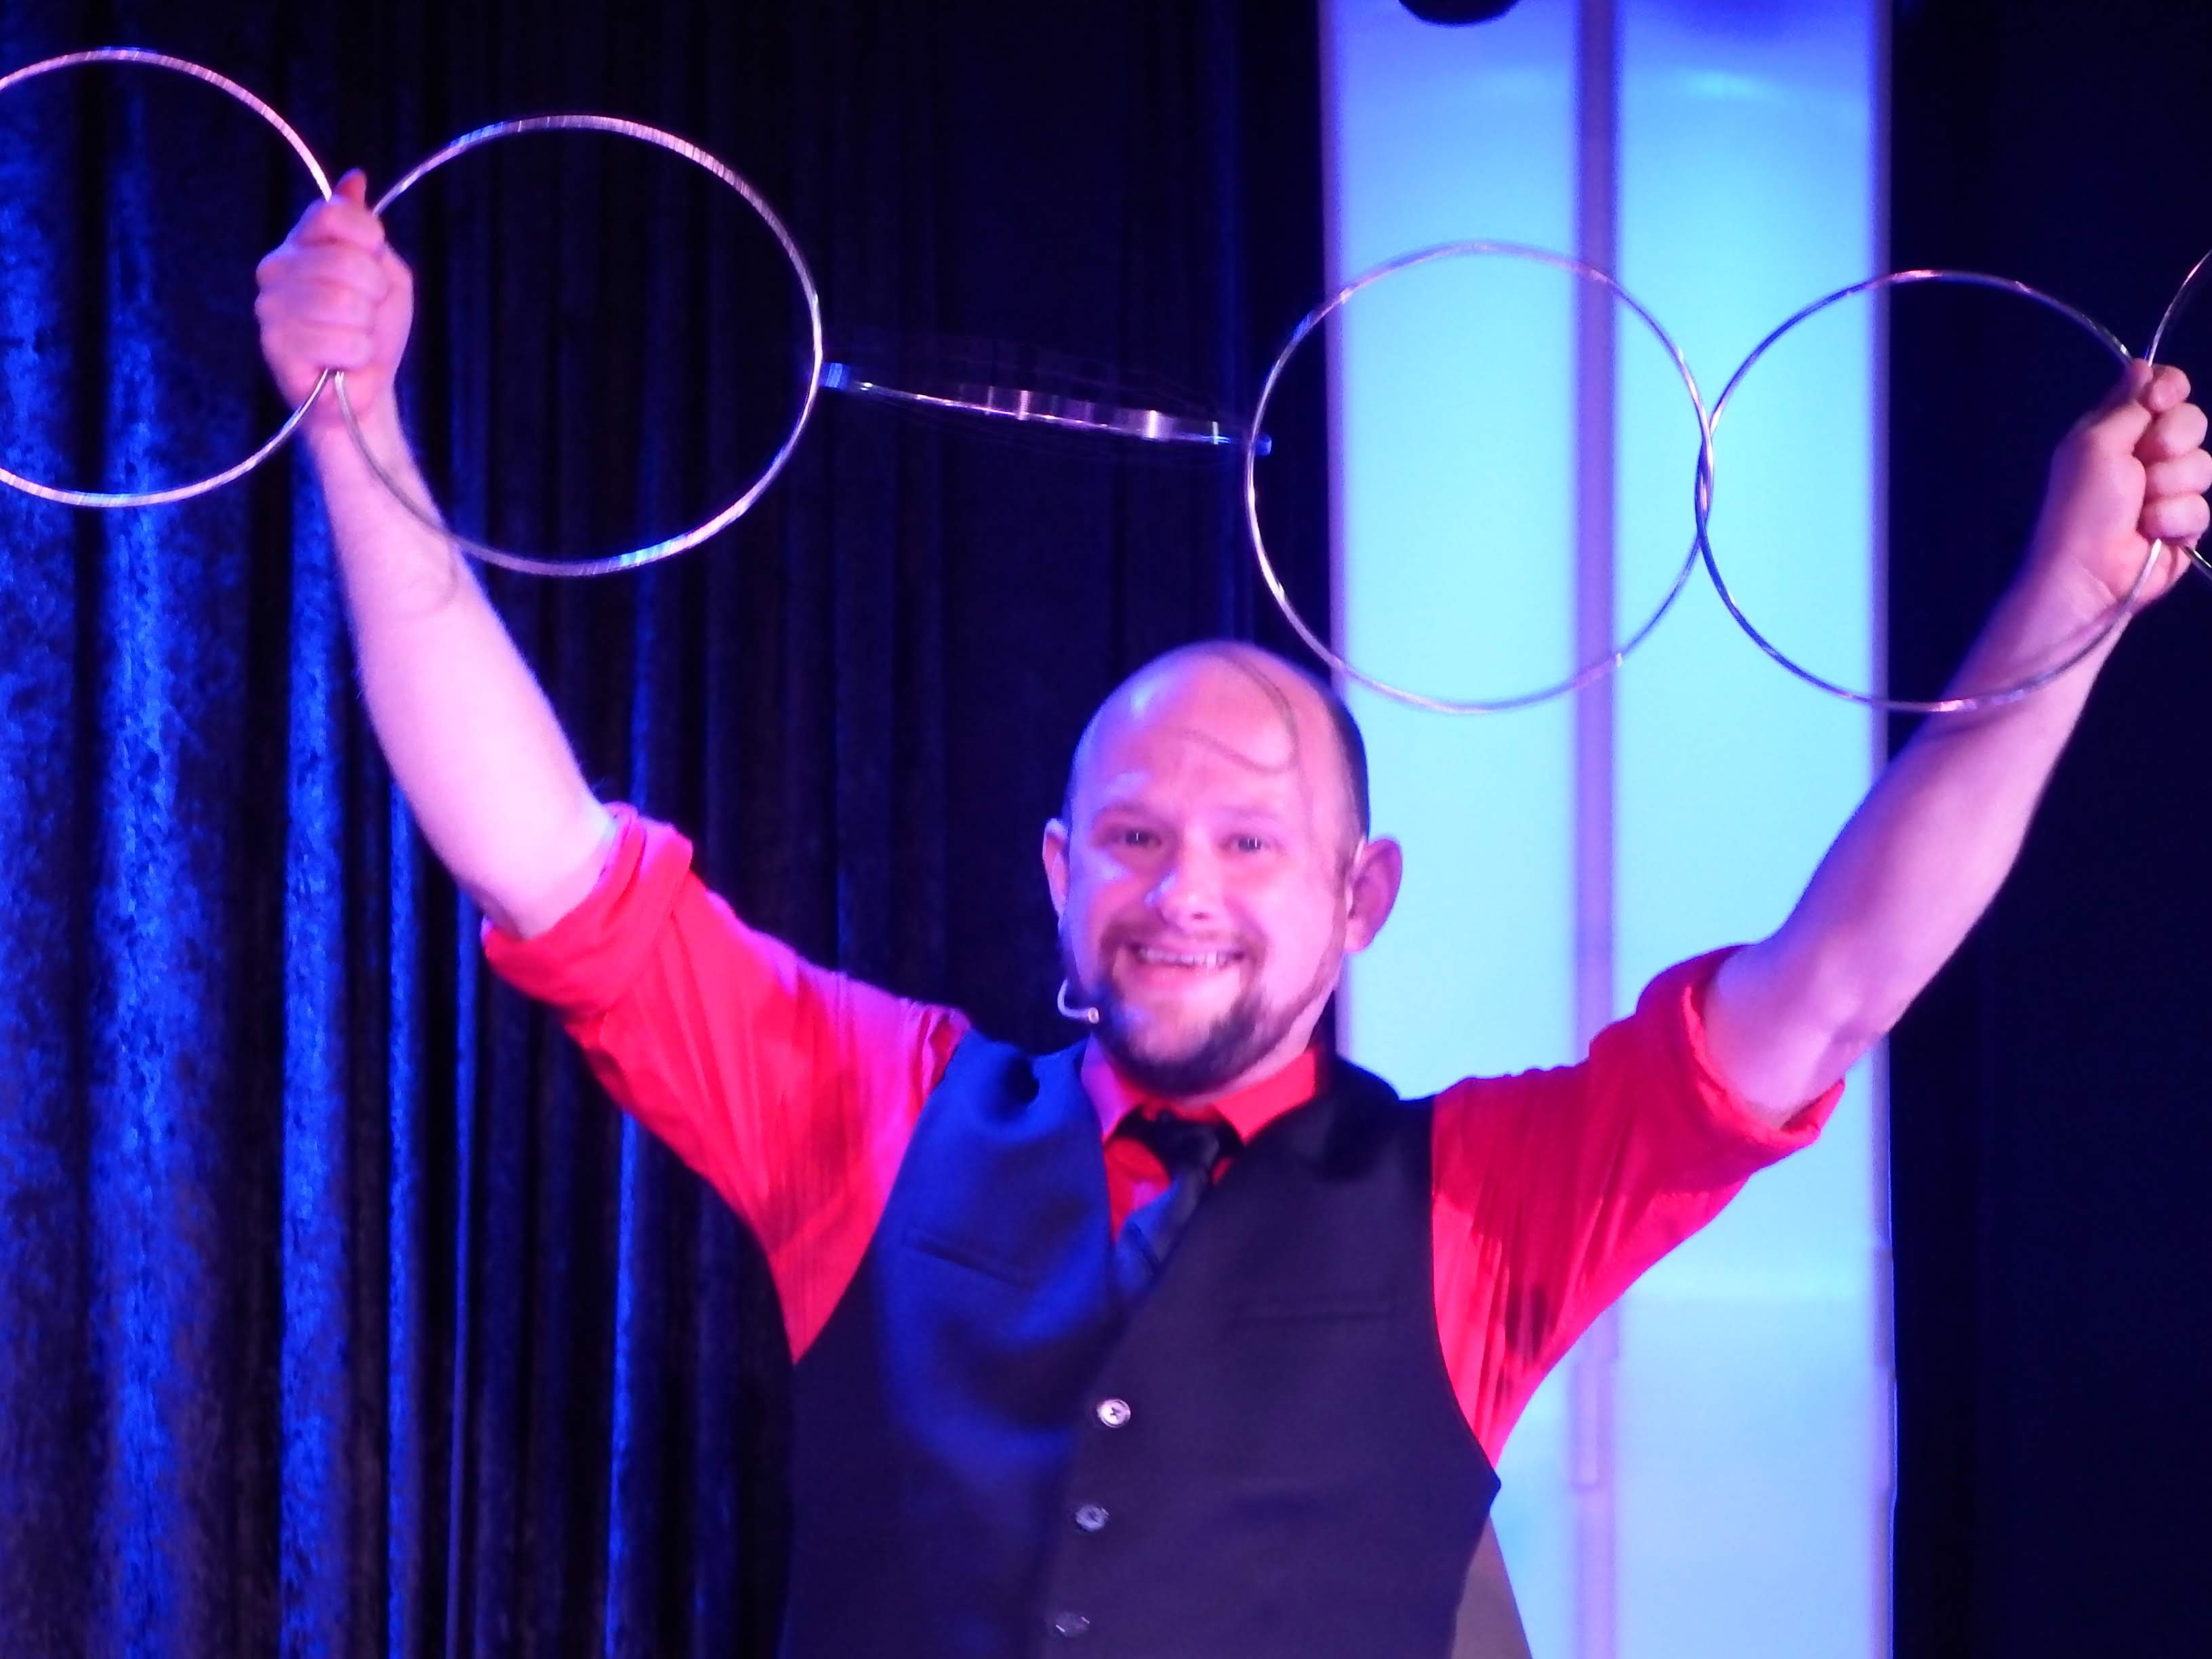 This Impossibilities Magic Show Trick is filled with wonder and intrigue.